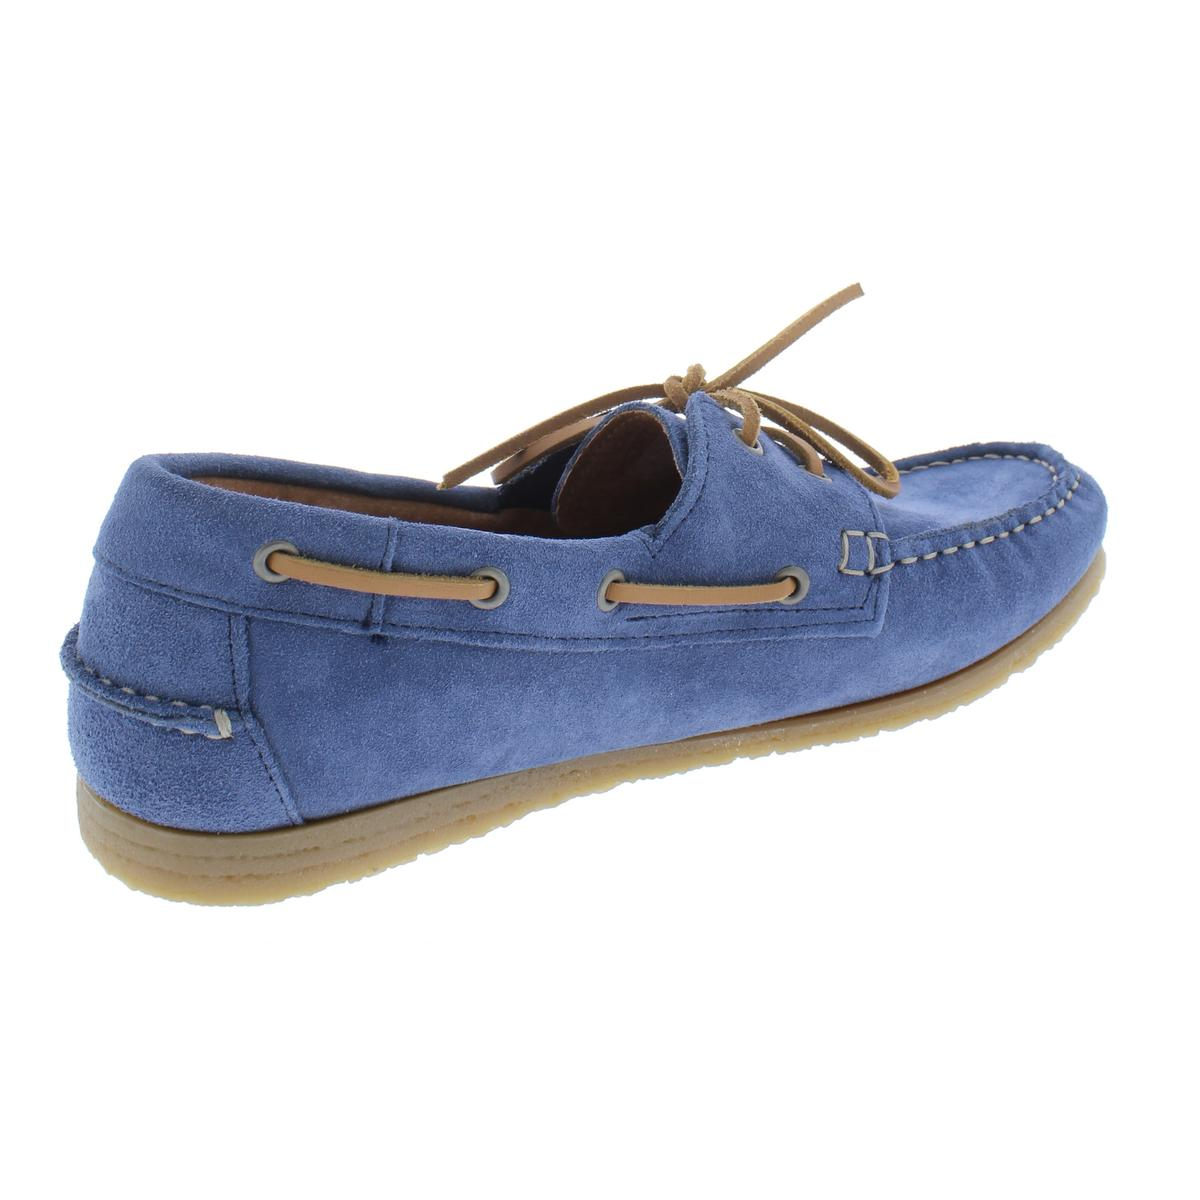 Steve-Madden-Mens-Buoy-Solid-Loafer-Slip-On-Boat-Shoes-BHFO-9944 thumbnail 4